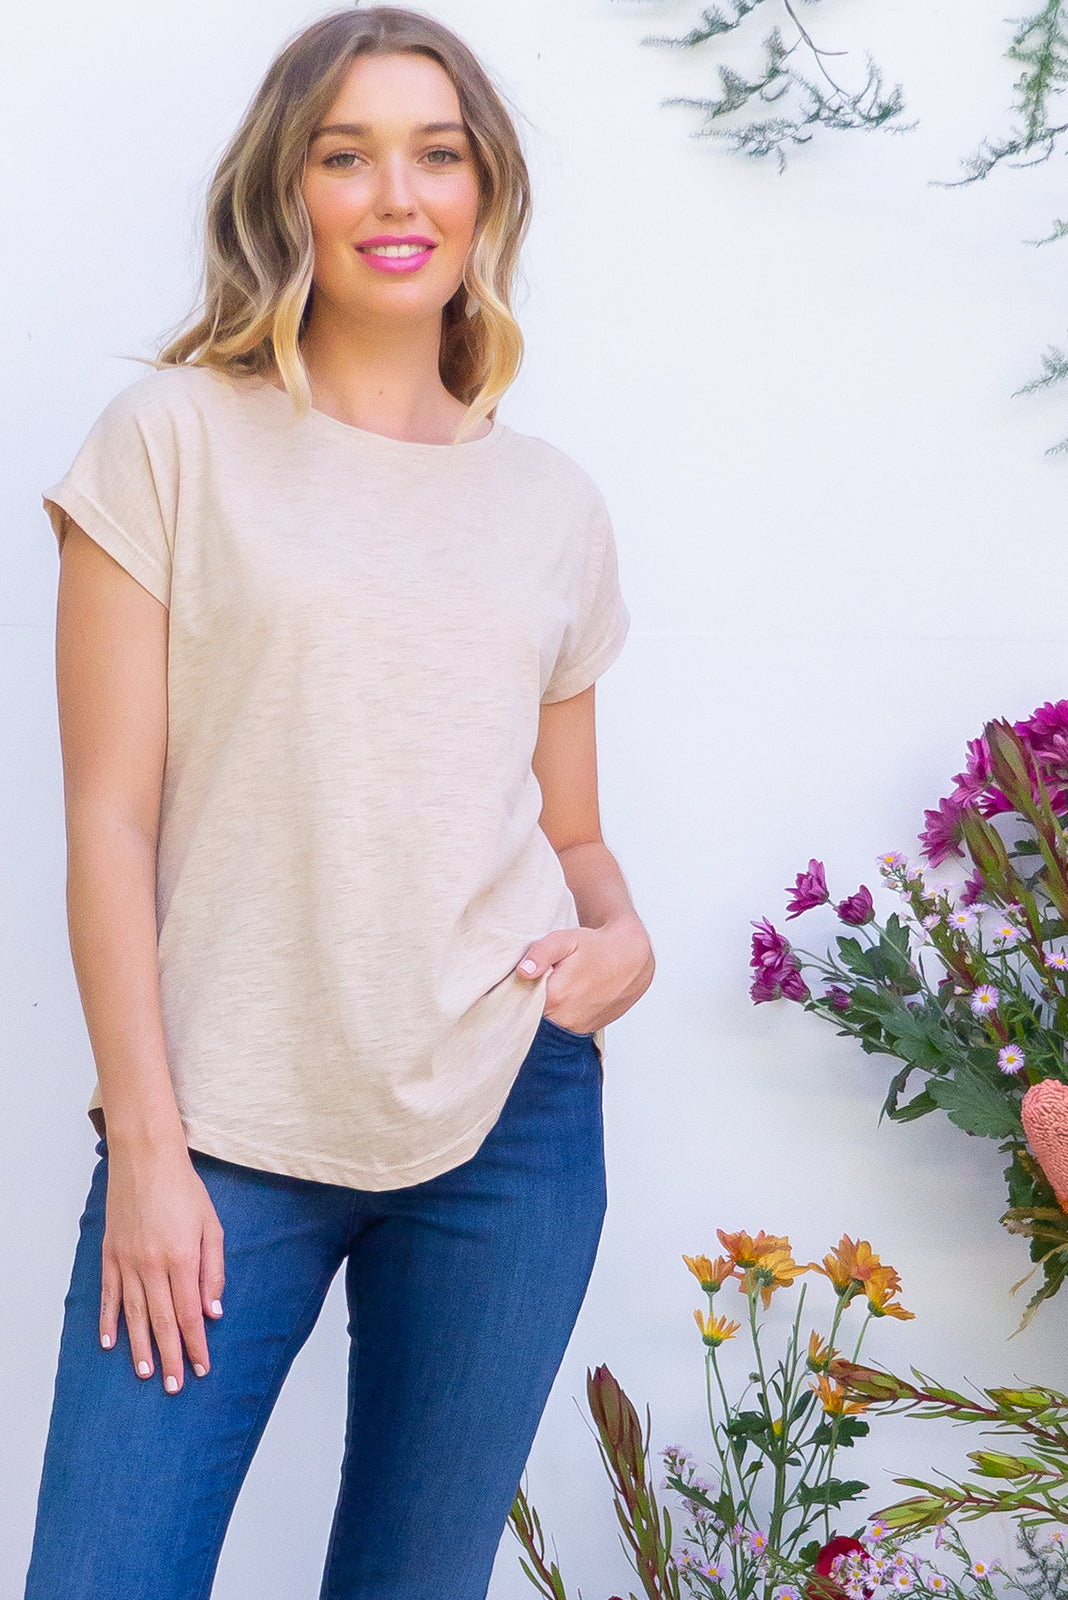 Phoenix Ecru short sleeve tshirt has a relaxed fit and is made of soft cotton polyester fabric with a scoop neckline and cap sleeve in a warm latte cream beige colour